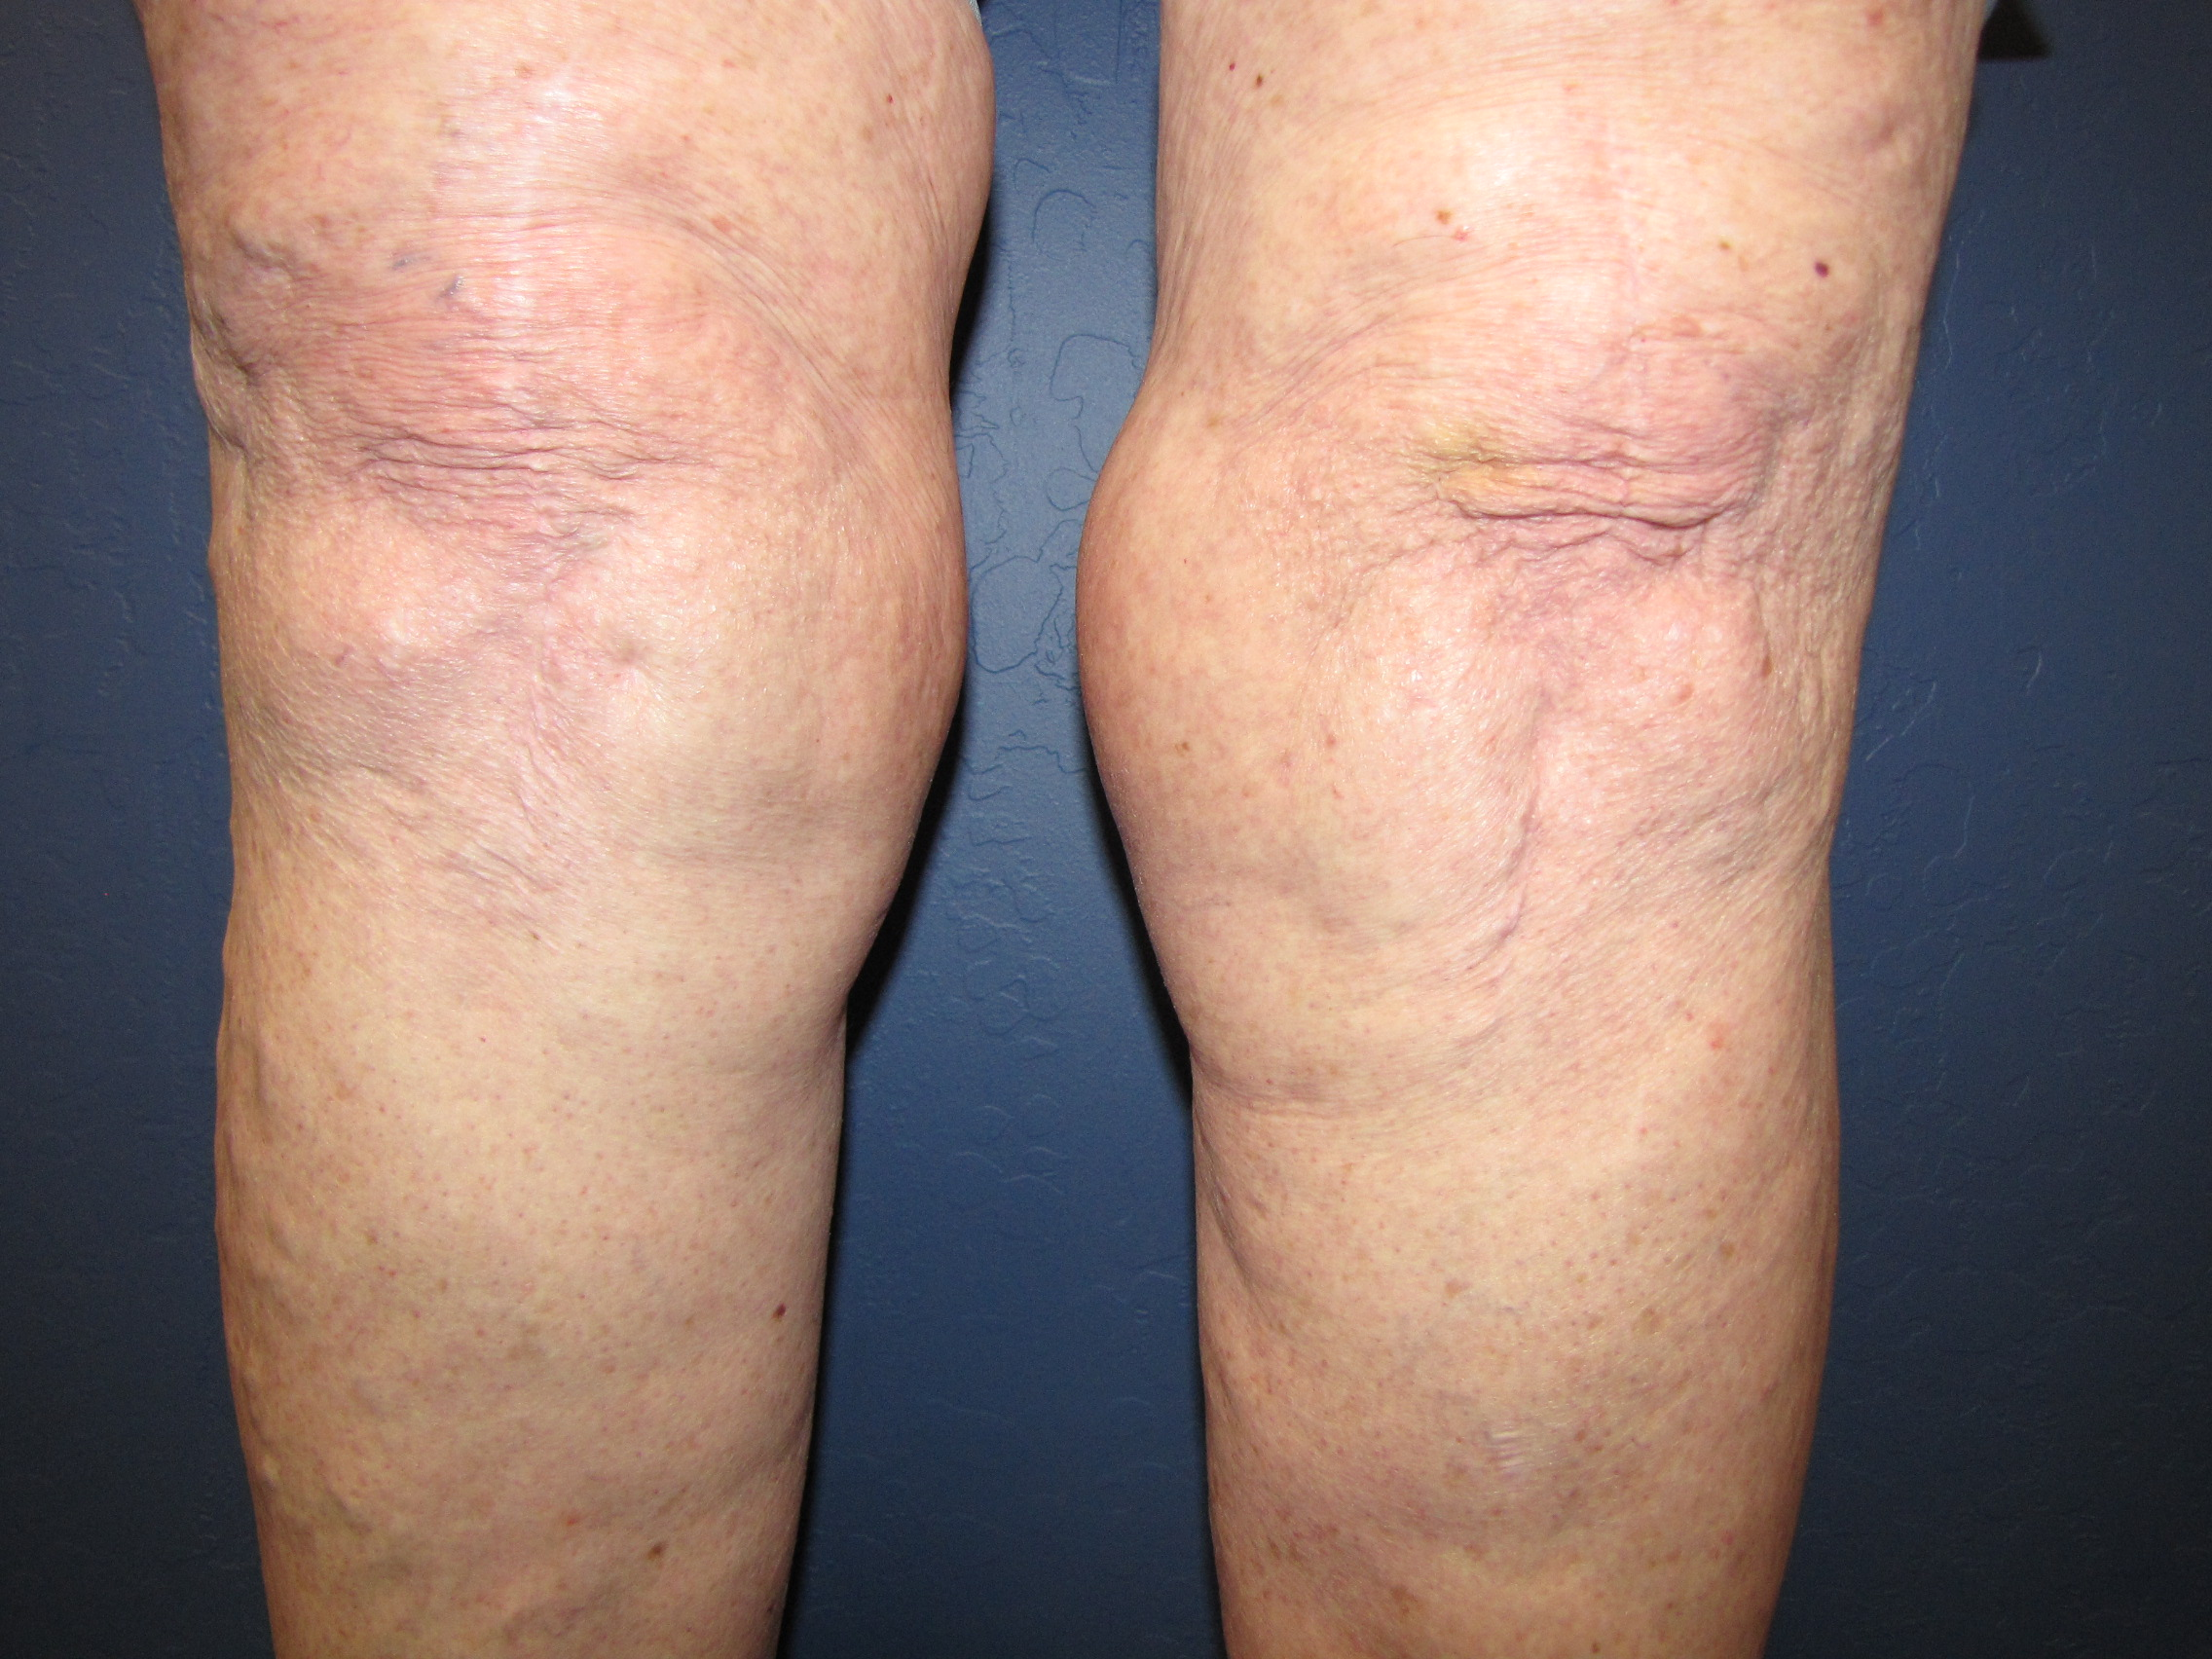 Liposuction-of-knees-pre.jpg